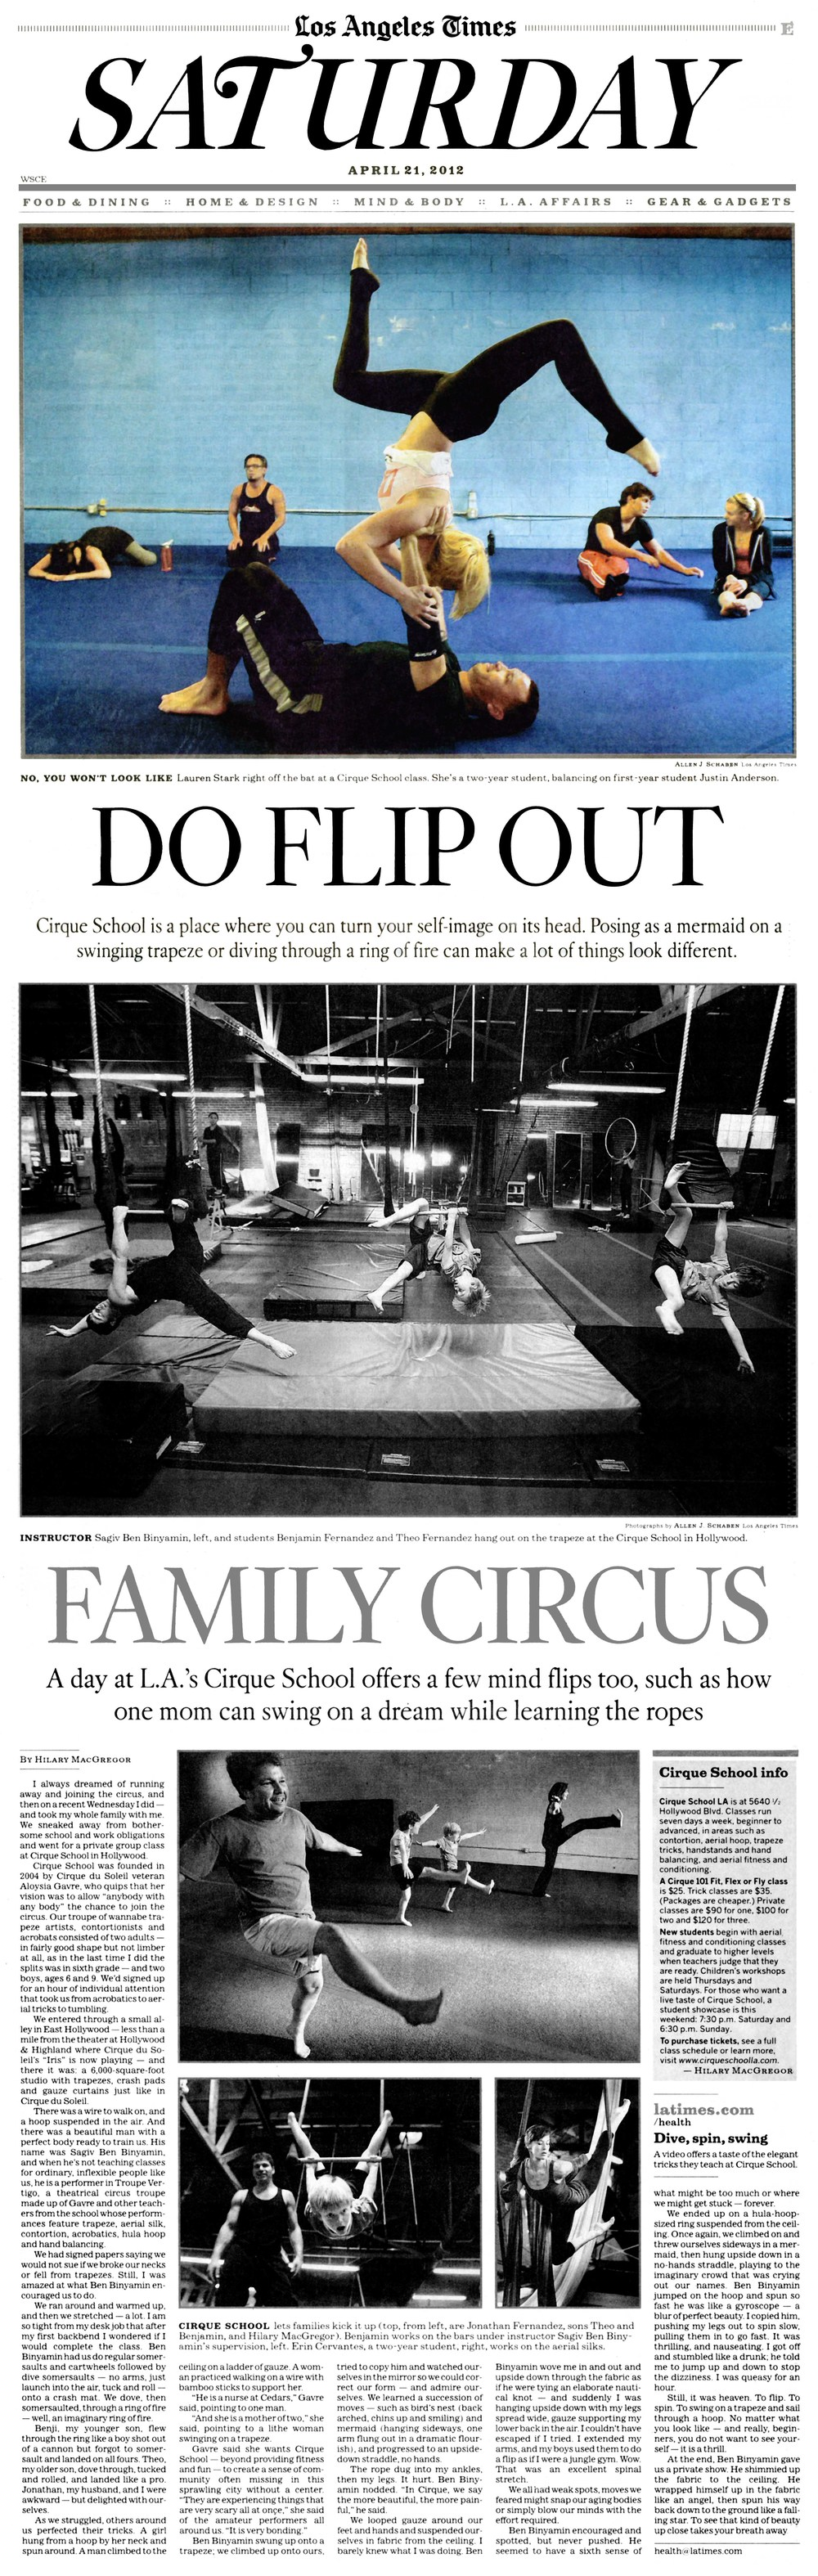 Cirque School_LATimes_4-12-12_article.jpg